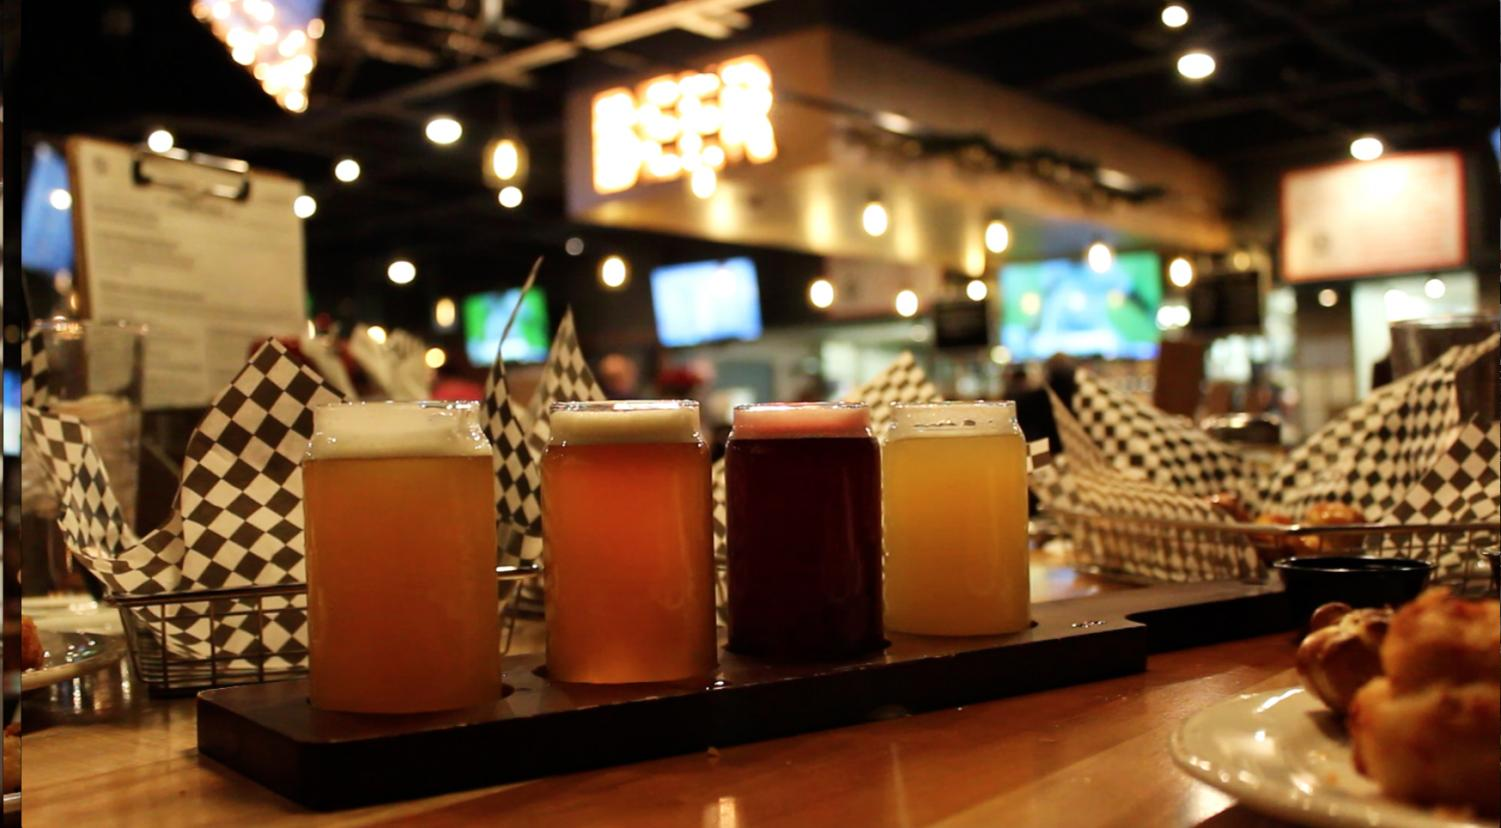 The craft beer industry brought in $26 billion last year.